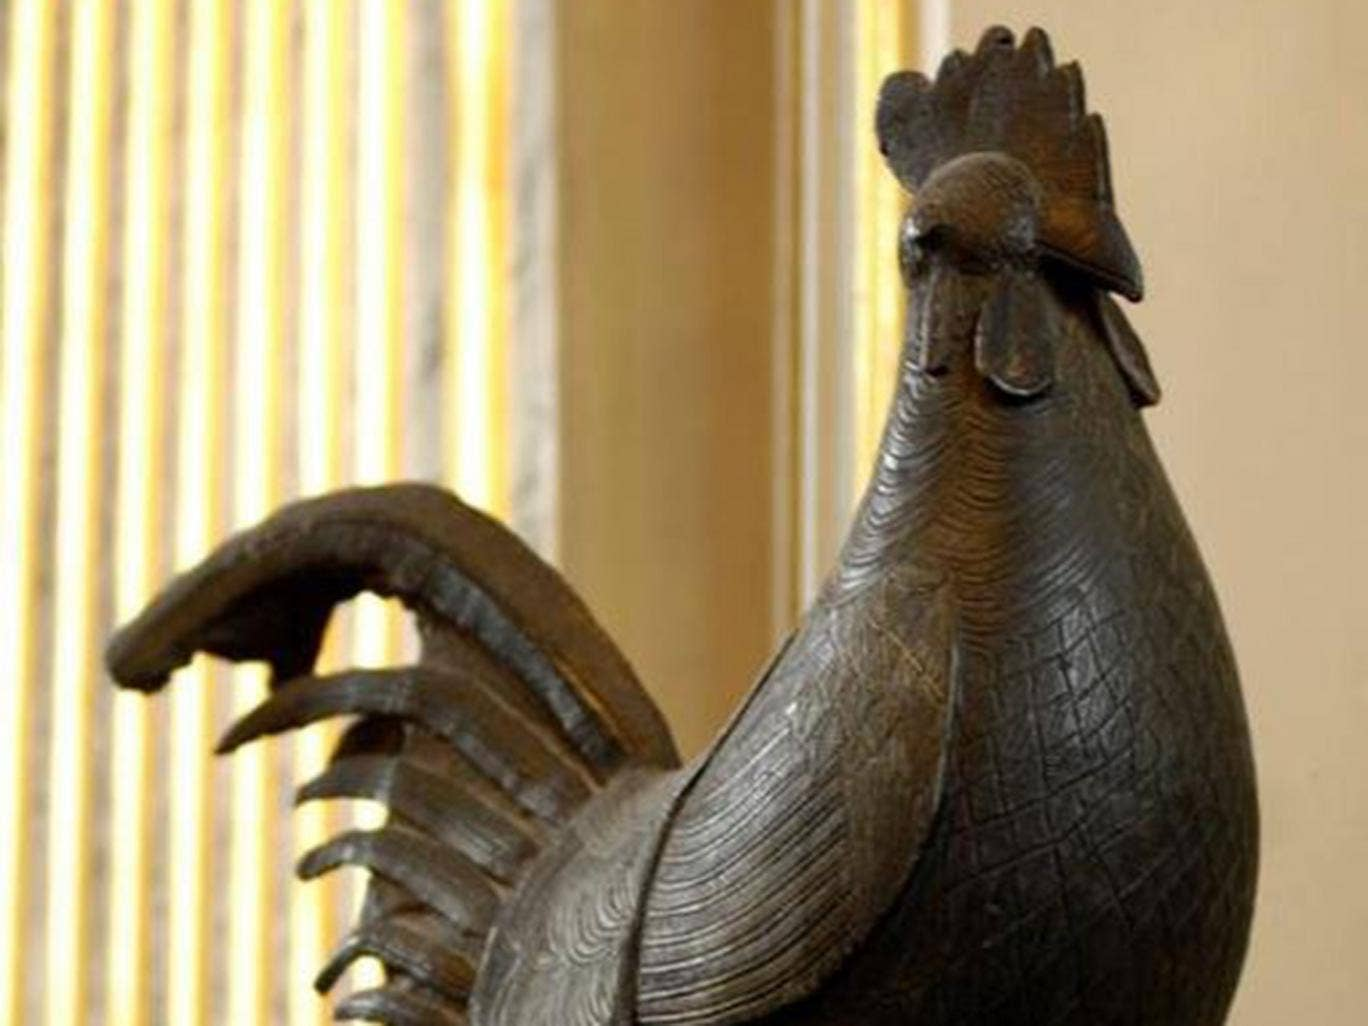 The bronze cockerel was dubbed the 'new Cecil Rhodes' by one student